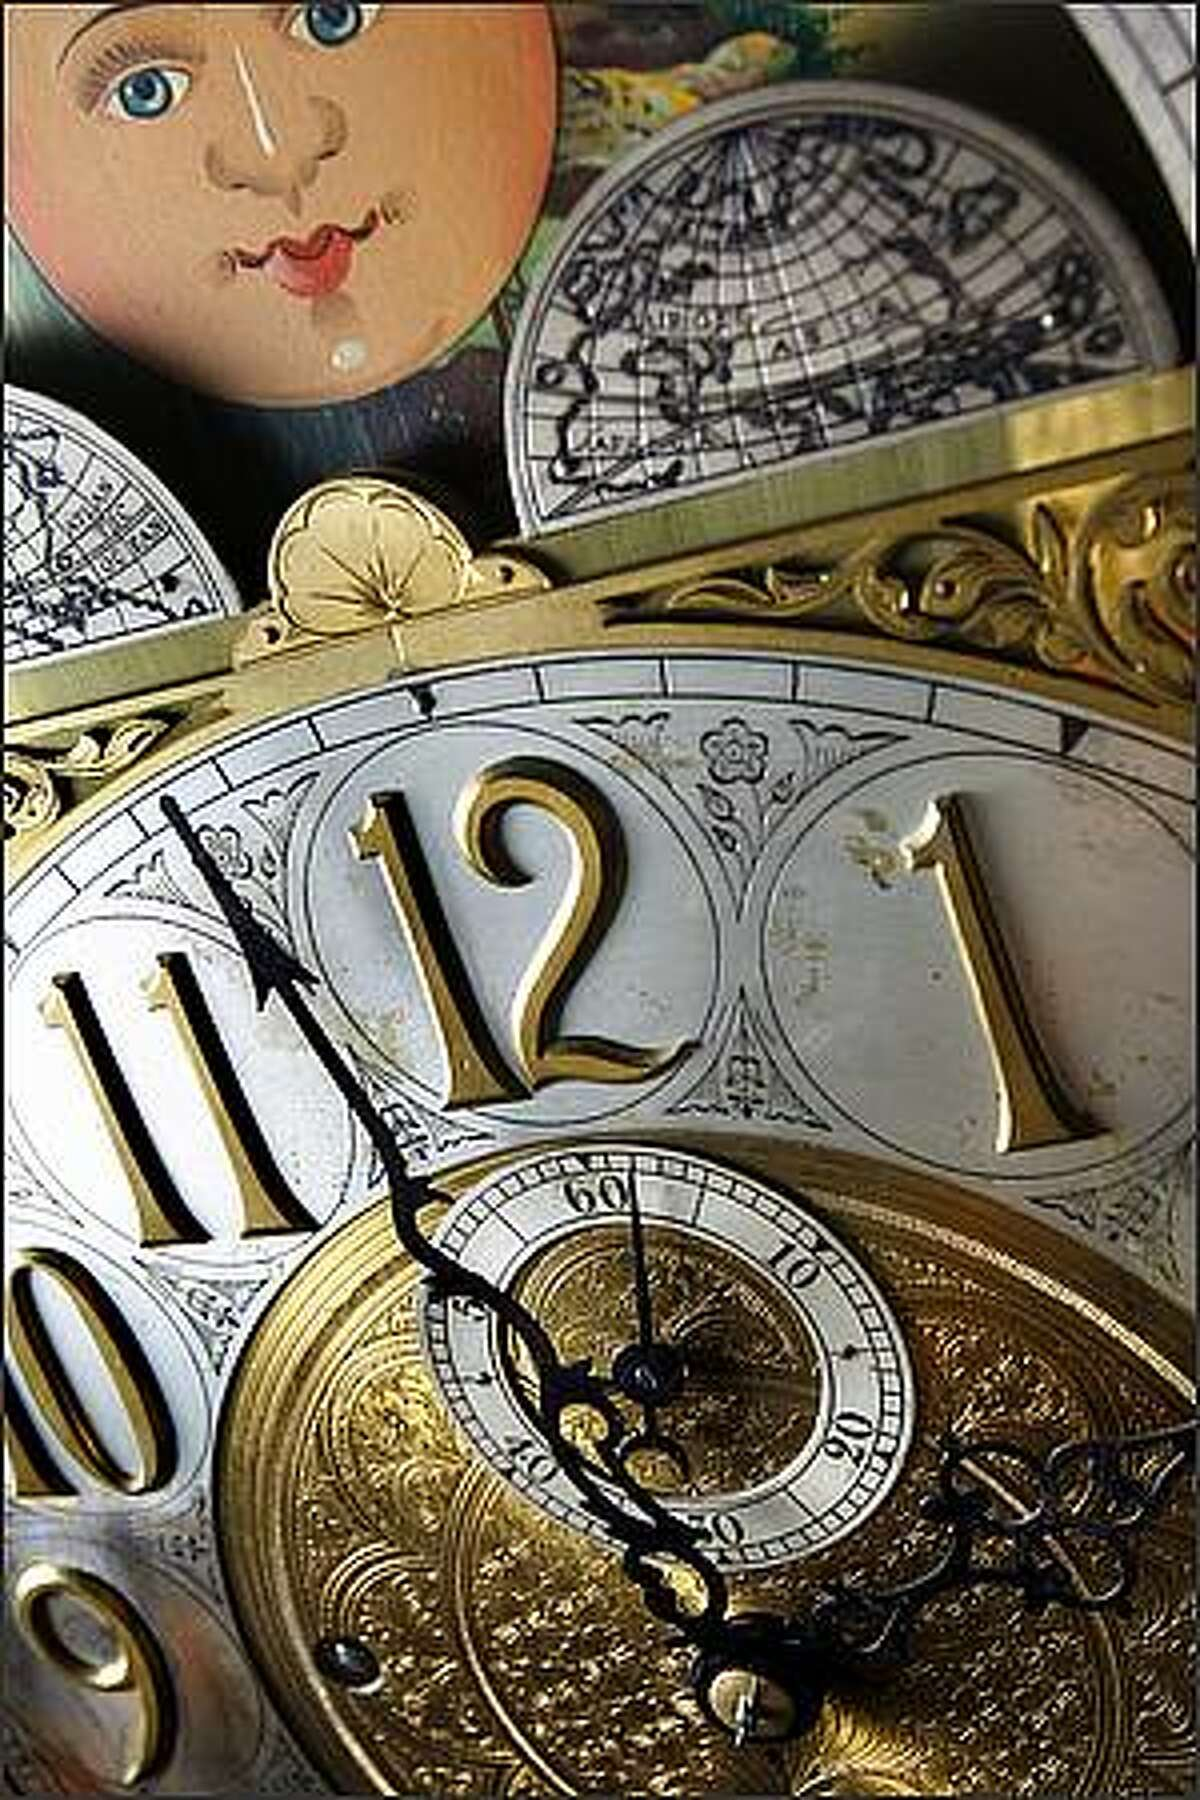 A Colonial grandfather clock moves with the rhythm of time, its minute hand having completing its orbit 24 times a day for over a hundred years. The clock sits in A House of Clocks repair facility in Lynnwood, Wash. after a complete overhaul.